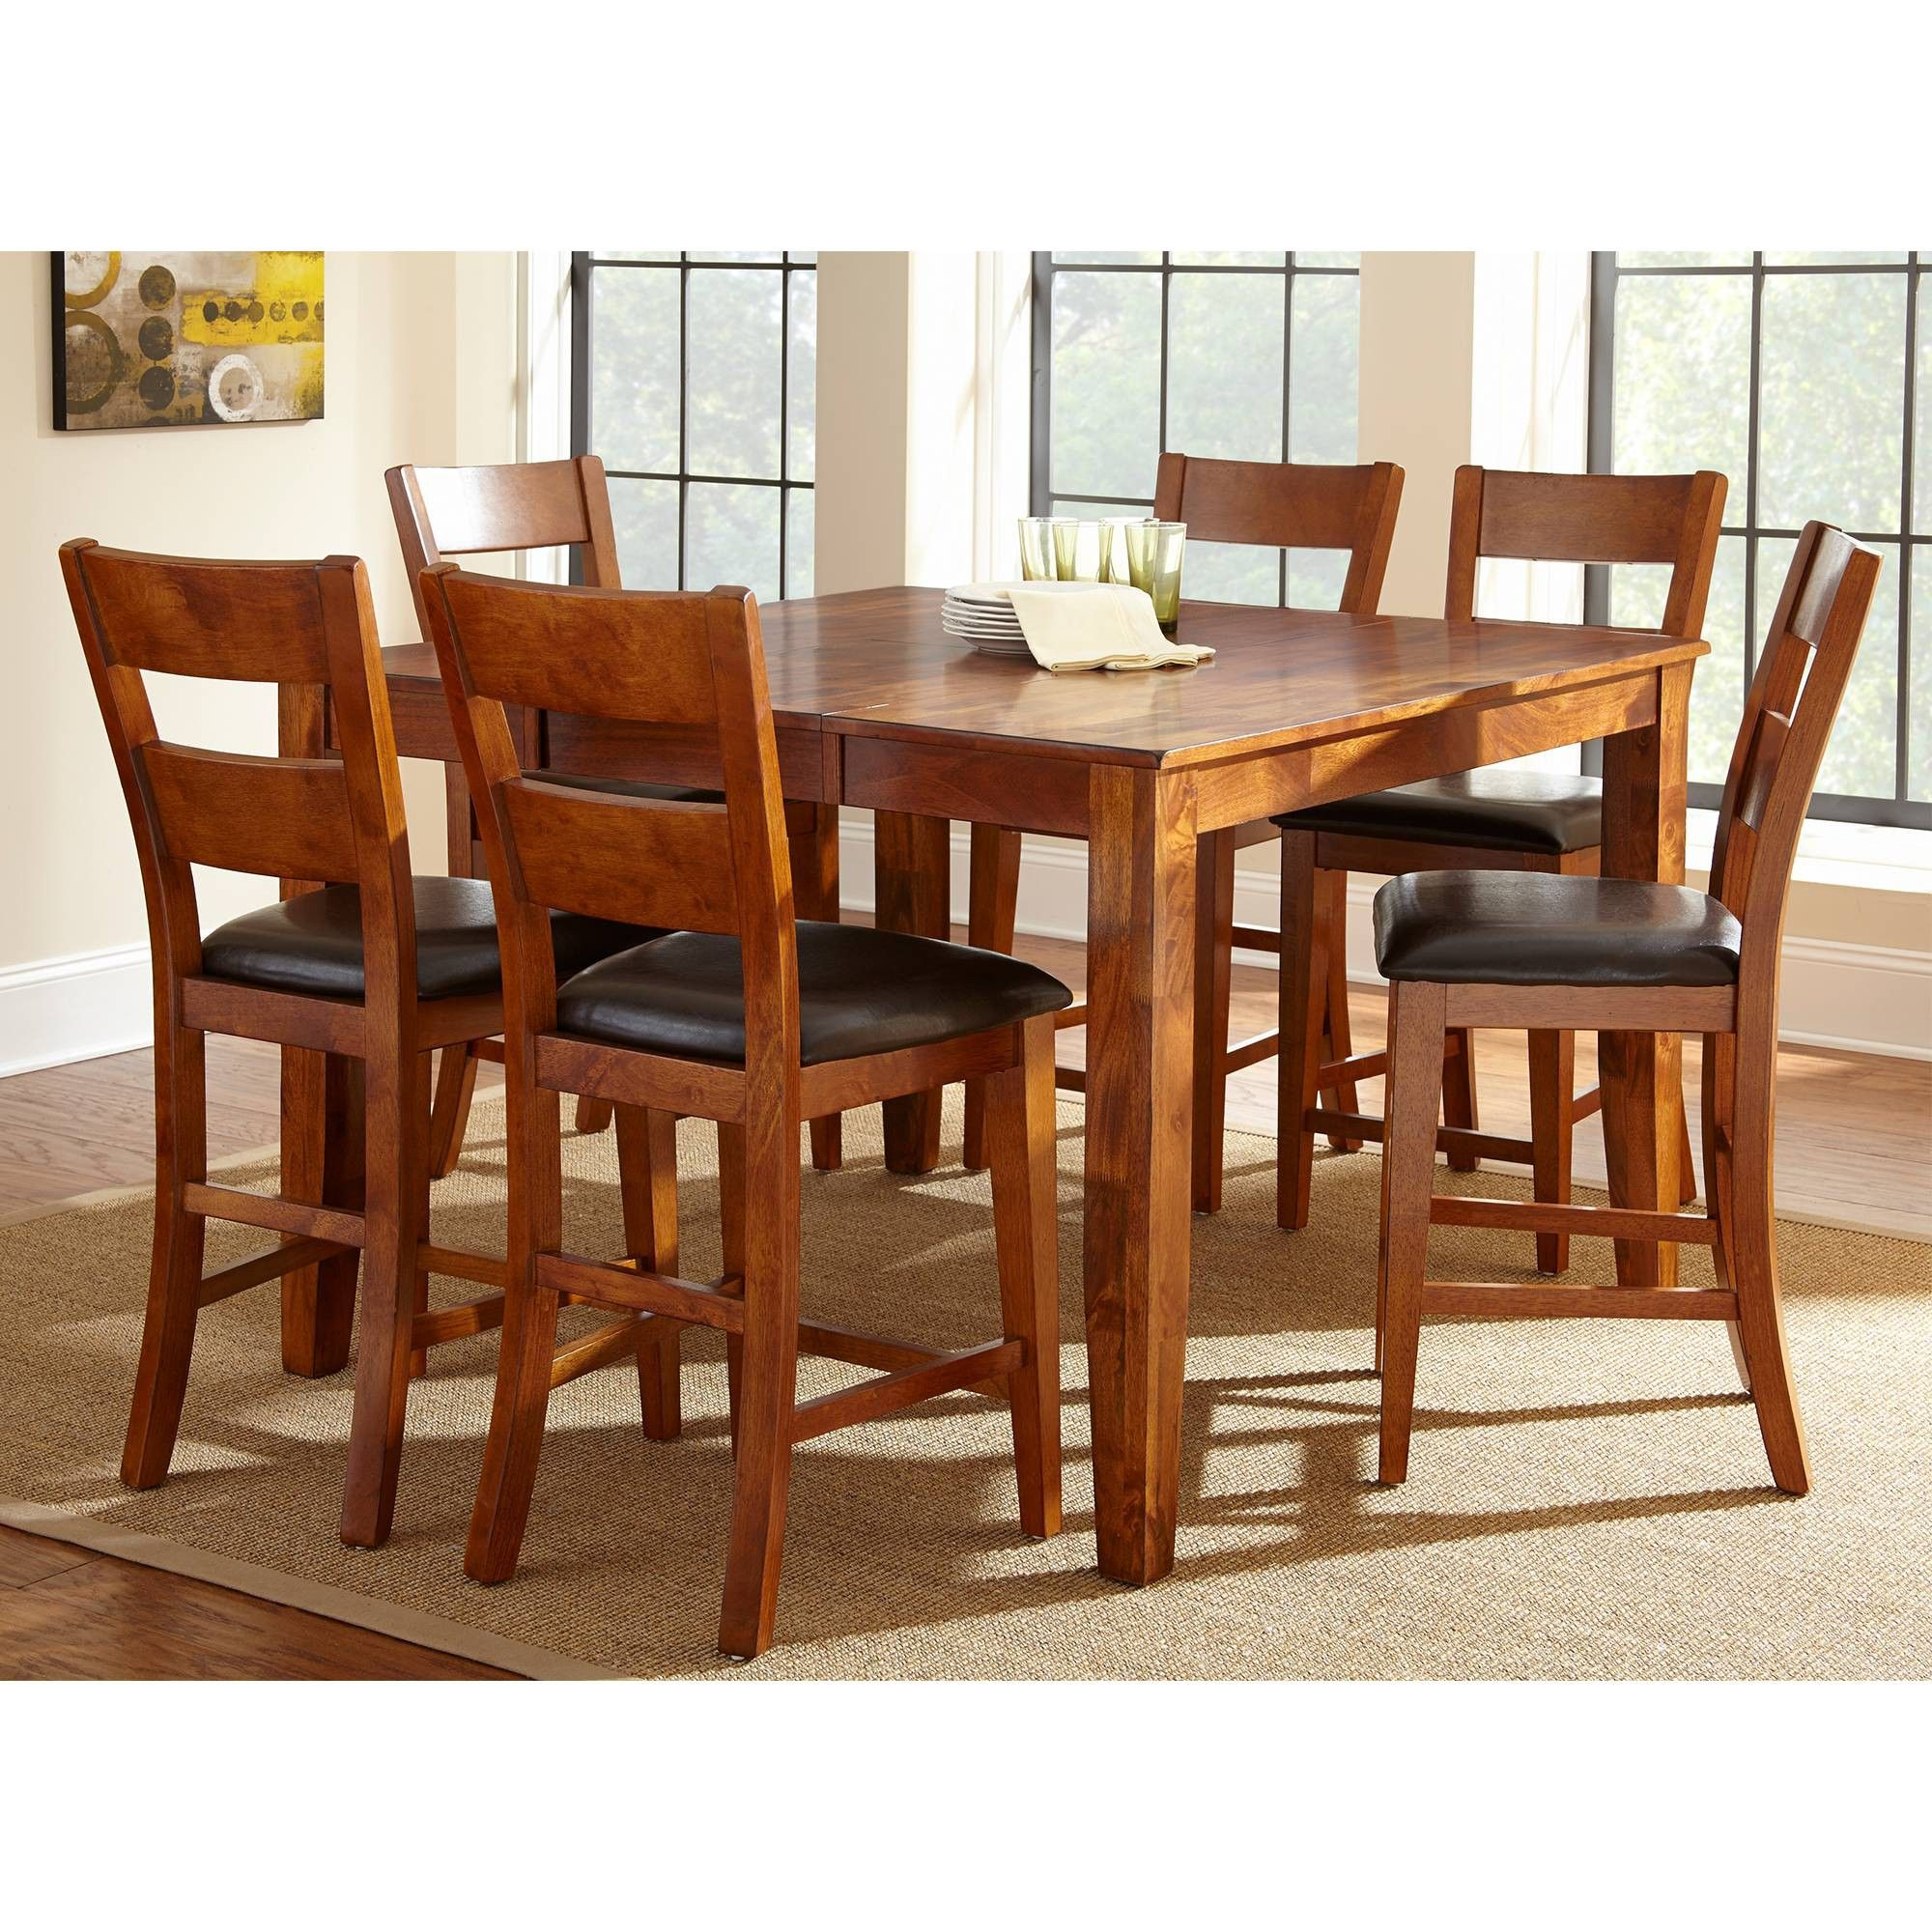 Steve Silver Co 7pc Amanda Counter Height Dining Set